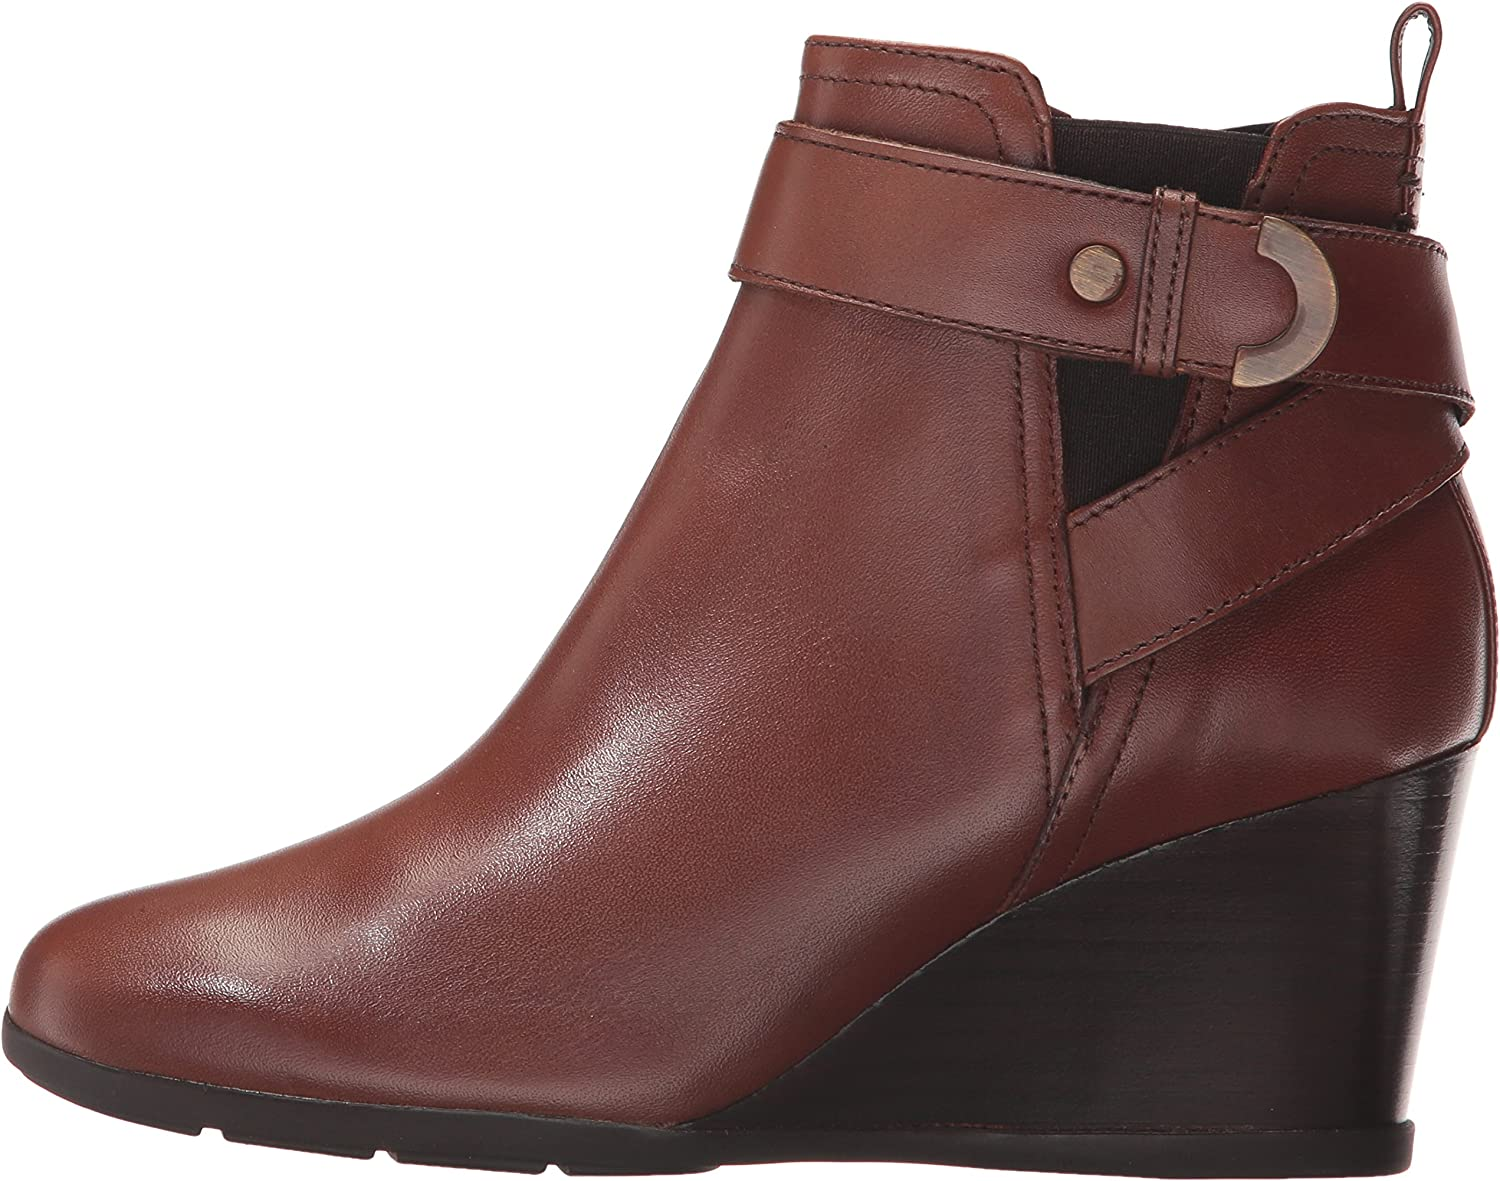 Geox D Inspiration Wedge D, Stivali Donna: Amazon.it: Scarpe